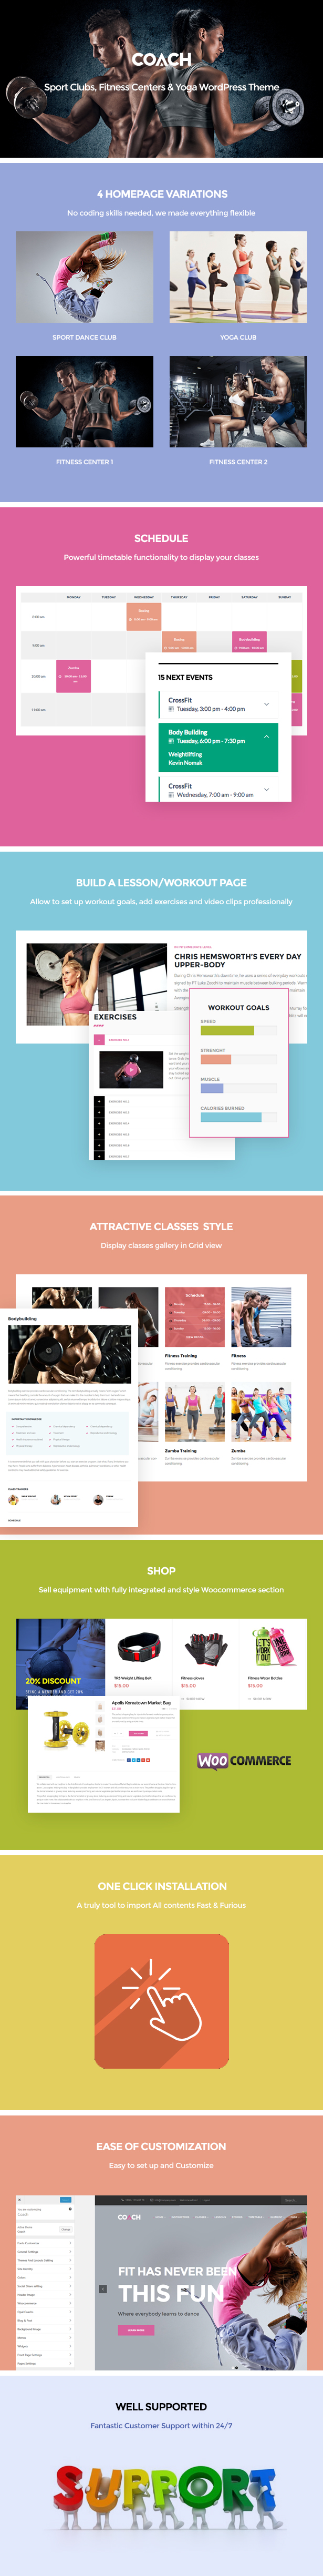 Coach - Sport Clubs, Fitness Centers & Courses WordPress Theme